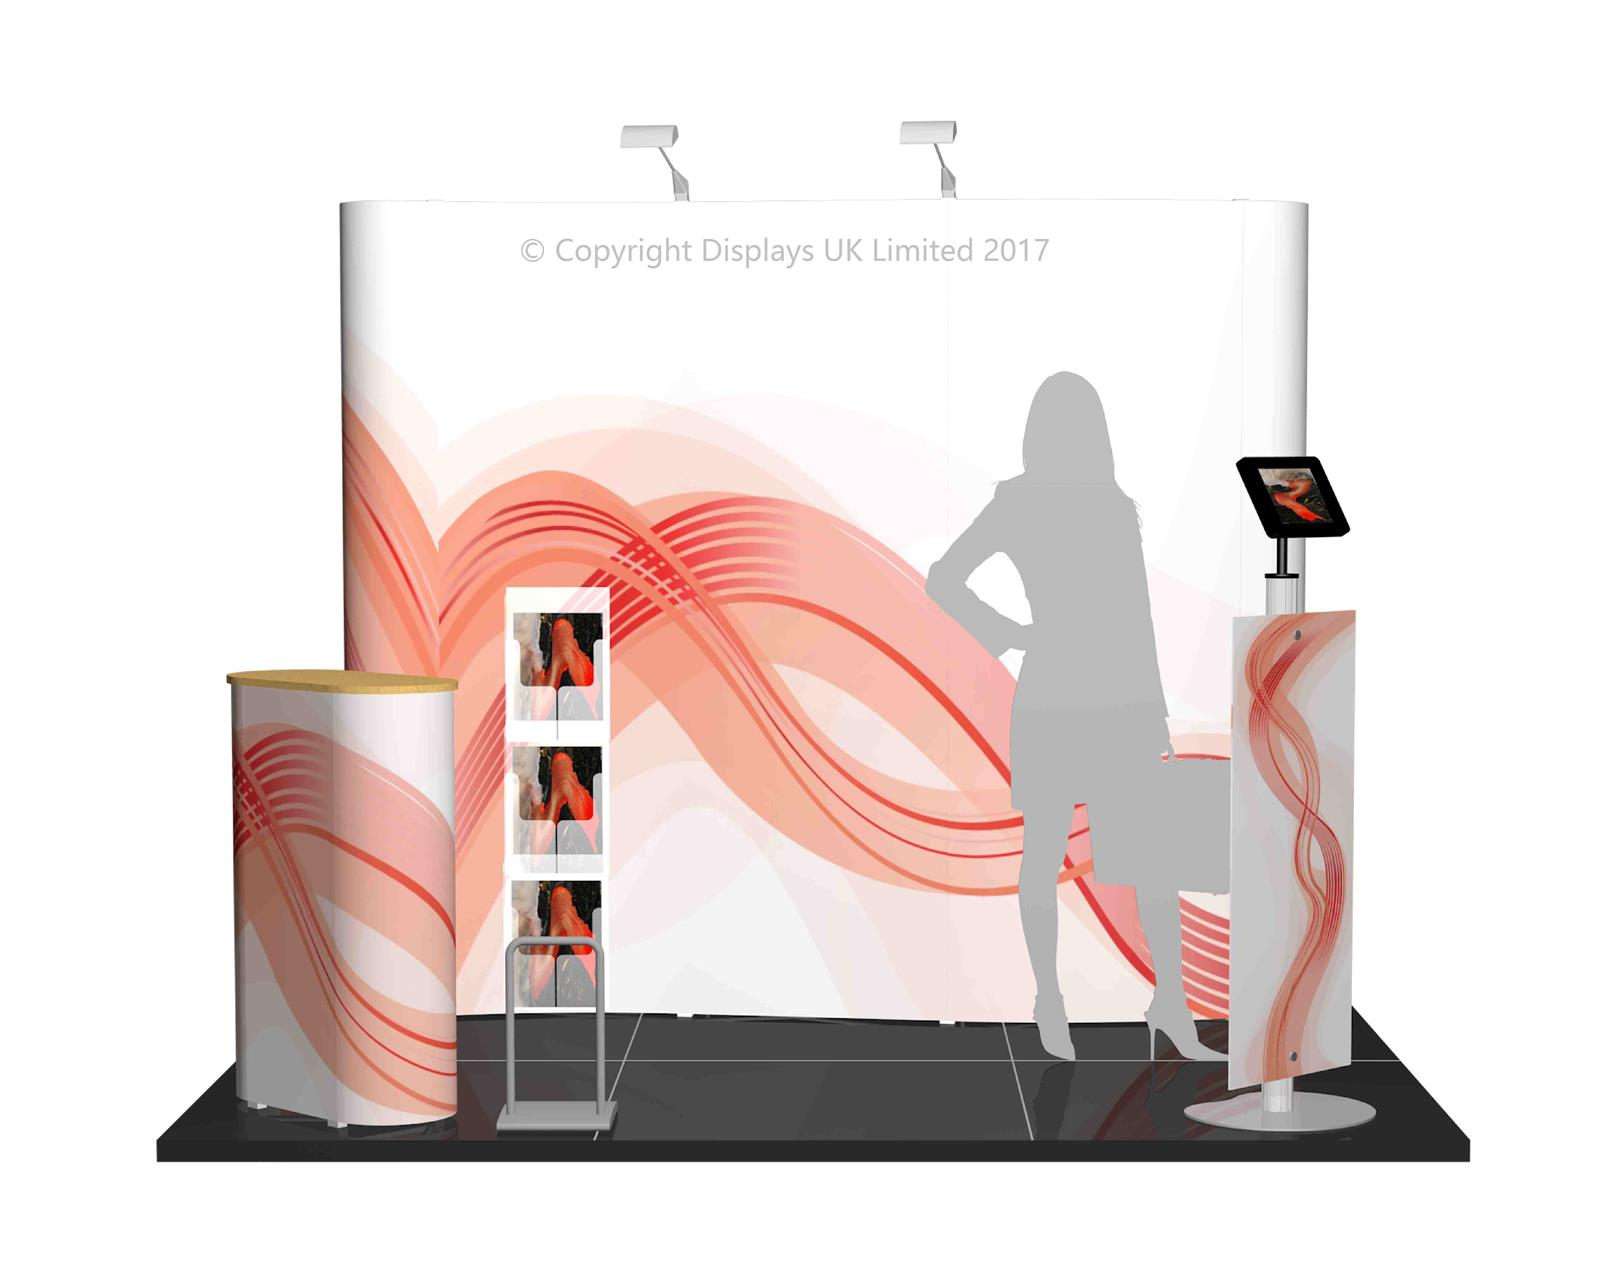 3m x 2m Linked Pop Up Exhibition Stand - Kit 7 - P3x2-3aH